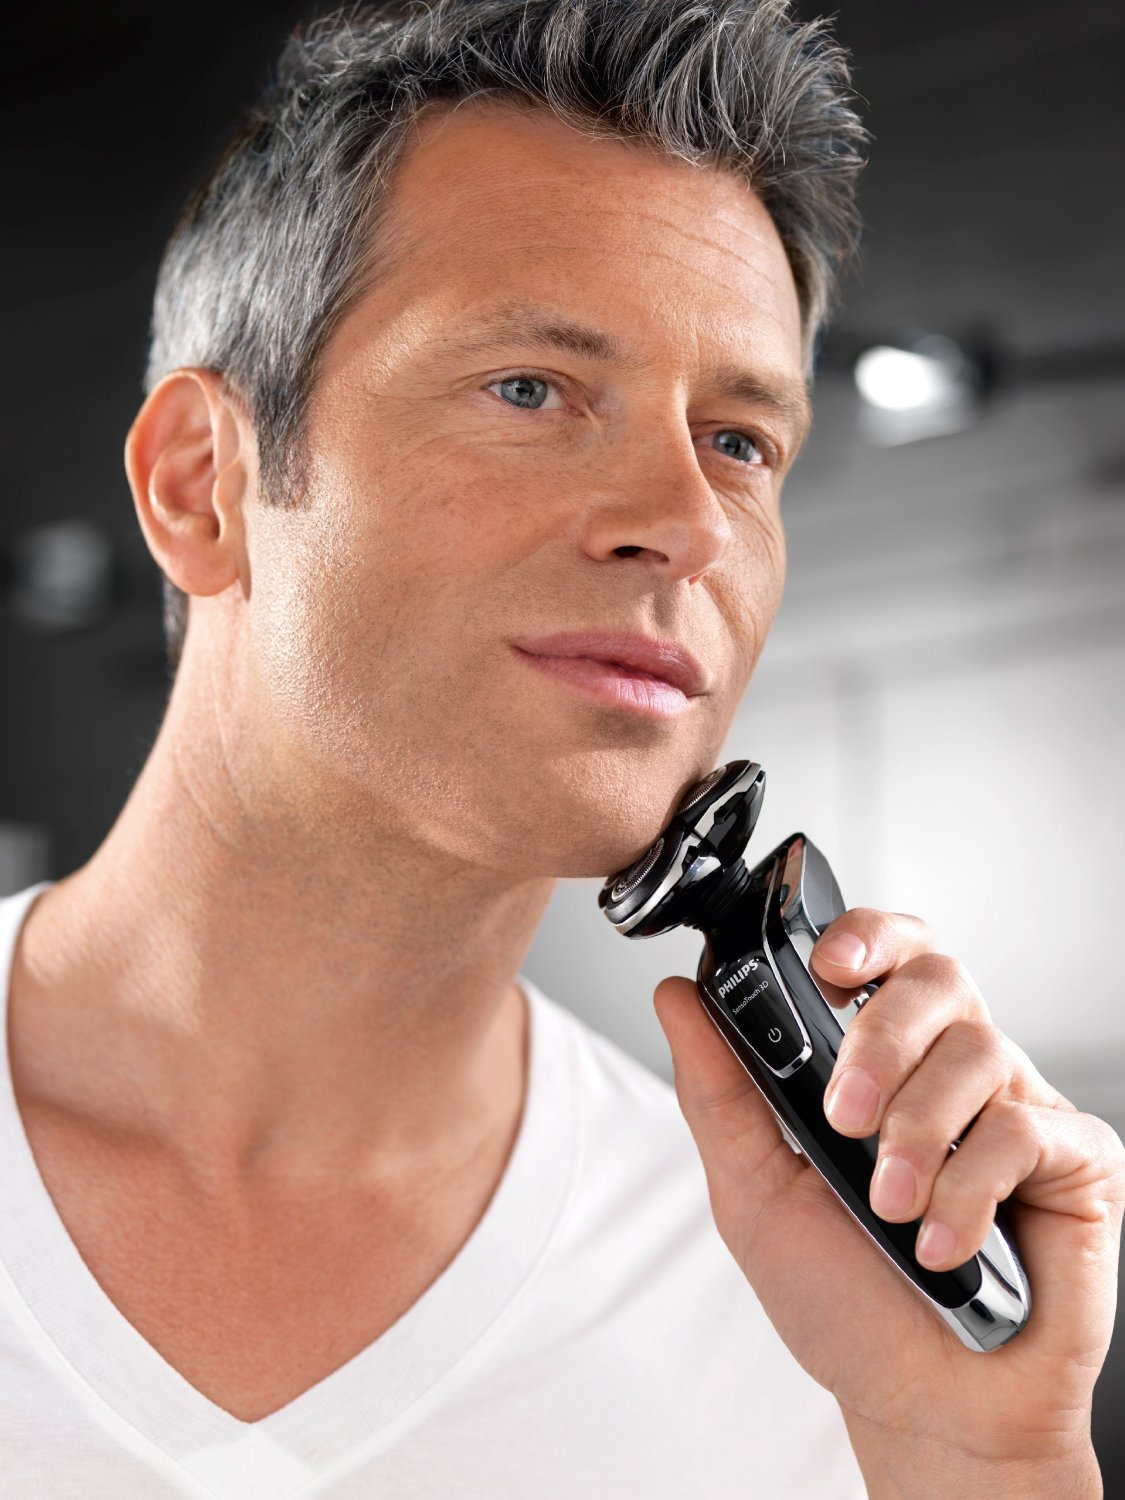 How To Shave With An Electric Razor Updated Guide 2020-2167